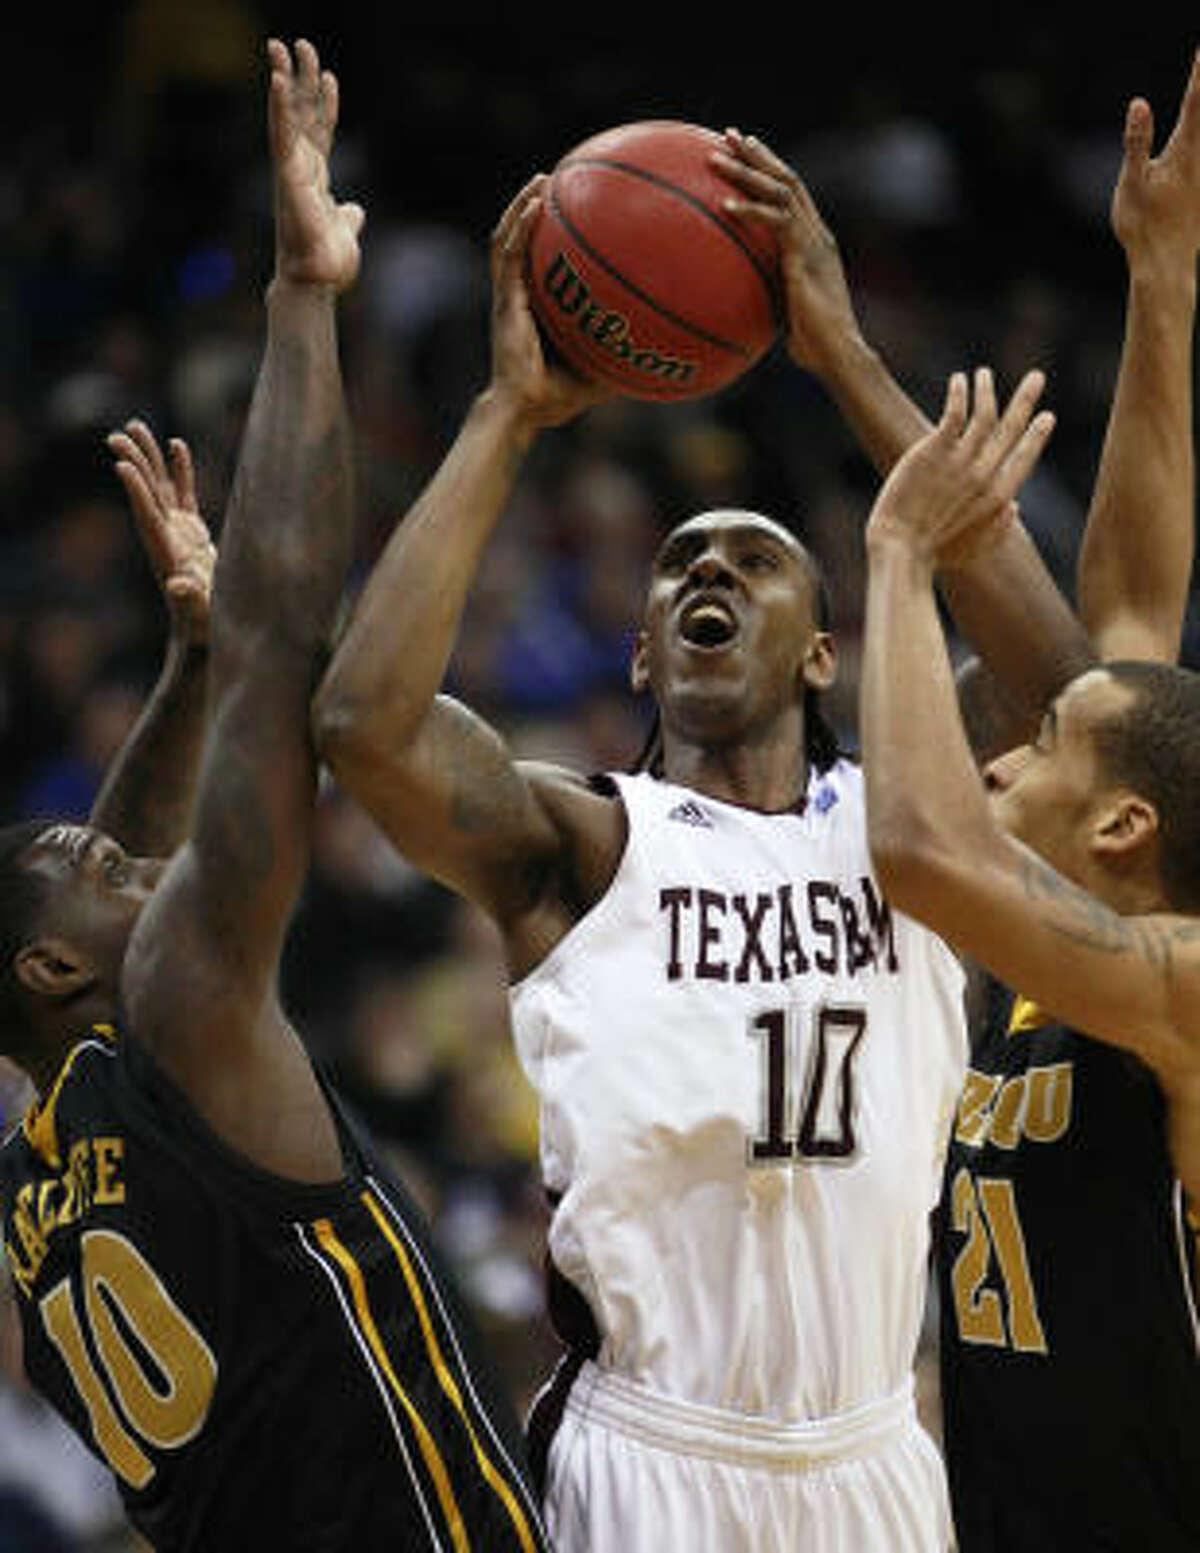 A&M forward David Loubeau had 20 points on 6 of 8 shooting in Thursday night's victory.